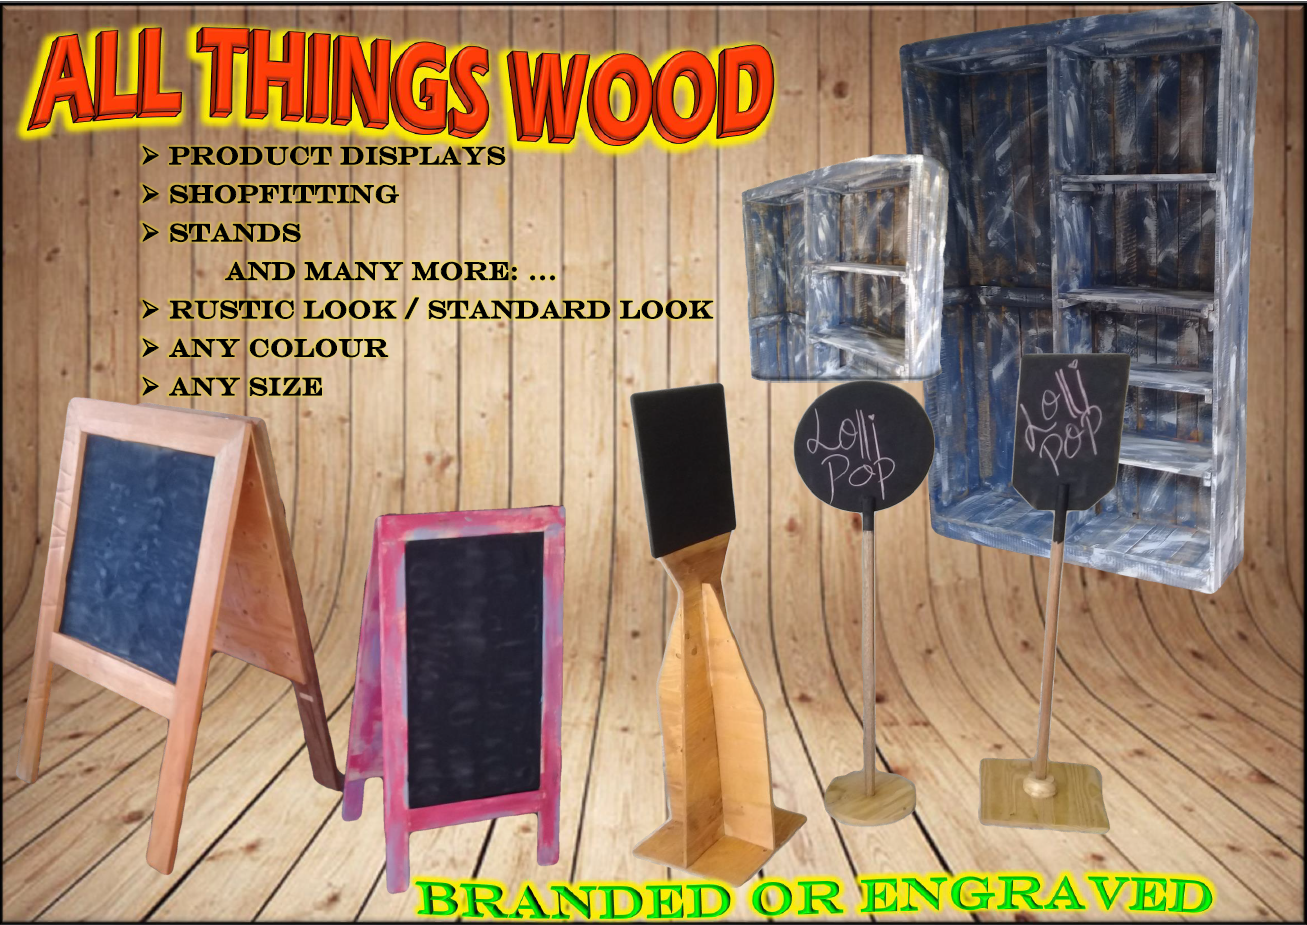 Wood Displays